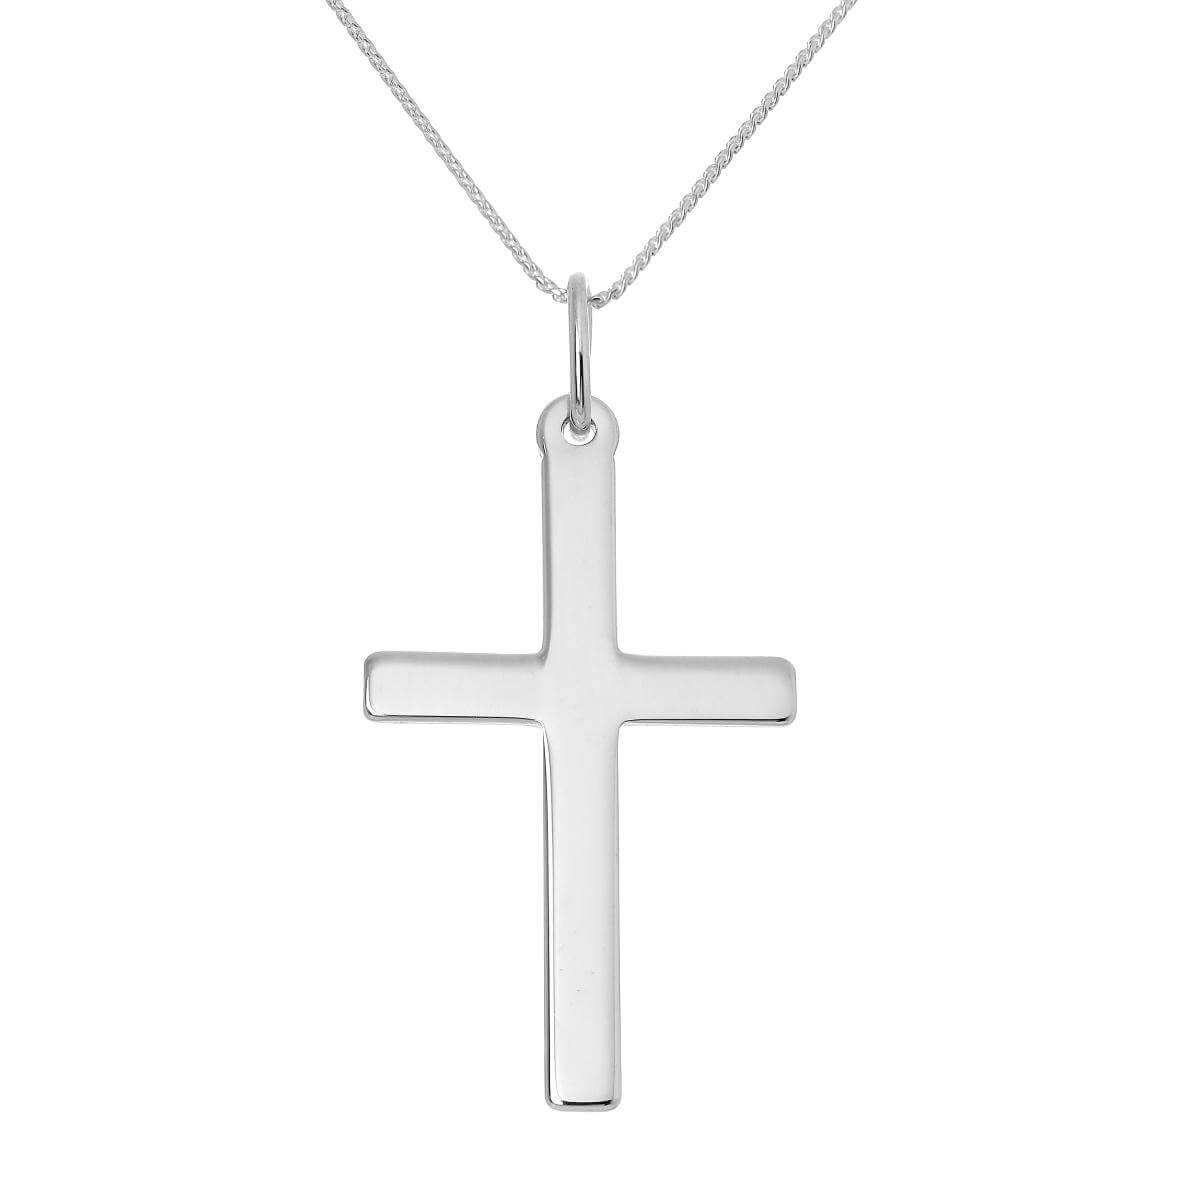 Large Sterling Silver Cross Pendant Necklace 16 - 22 Inches